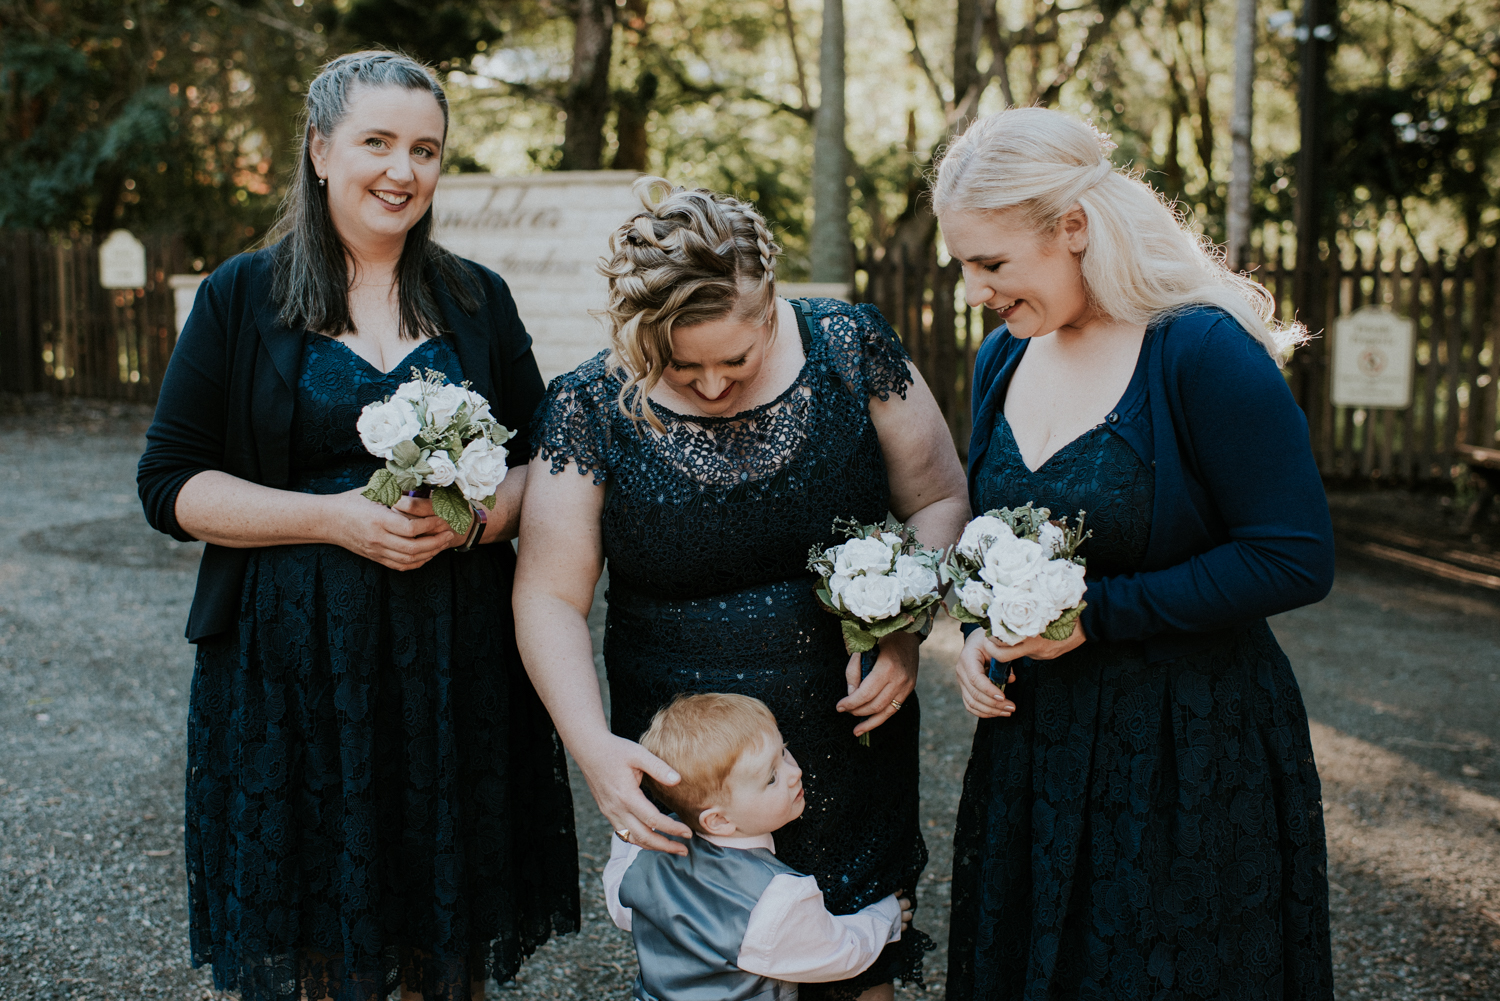 Brisbane Wedding Photographer | Bundaleer Rainforest Gardens-9.jpg